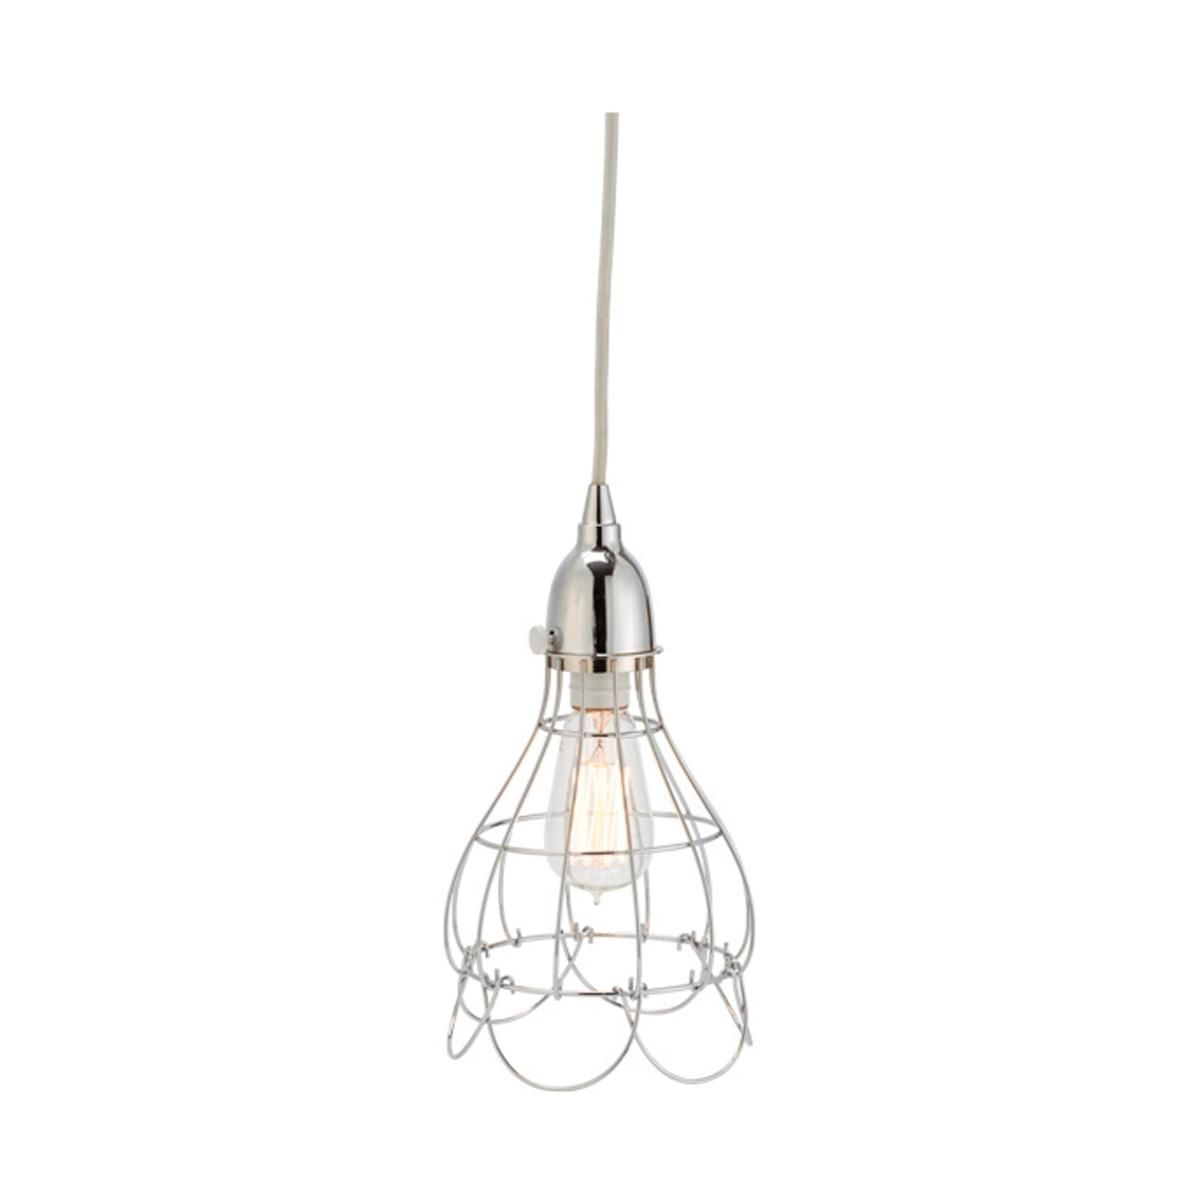 Industrial Cage Work Light Pendant With Images Pendant Light